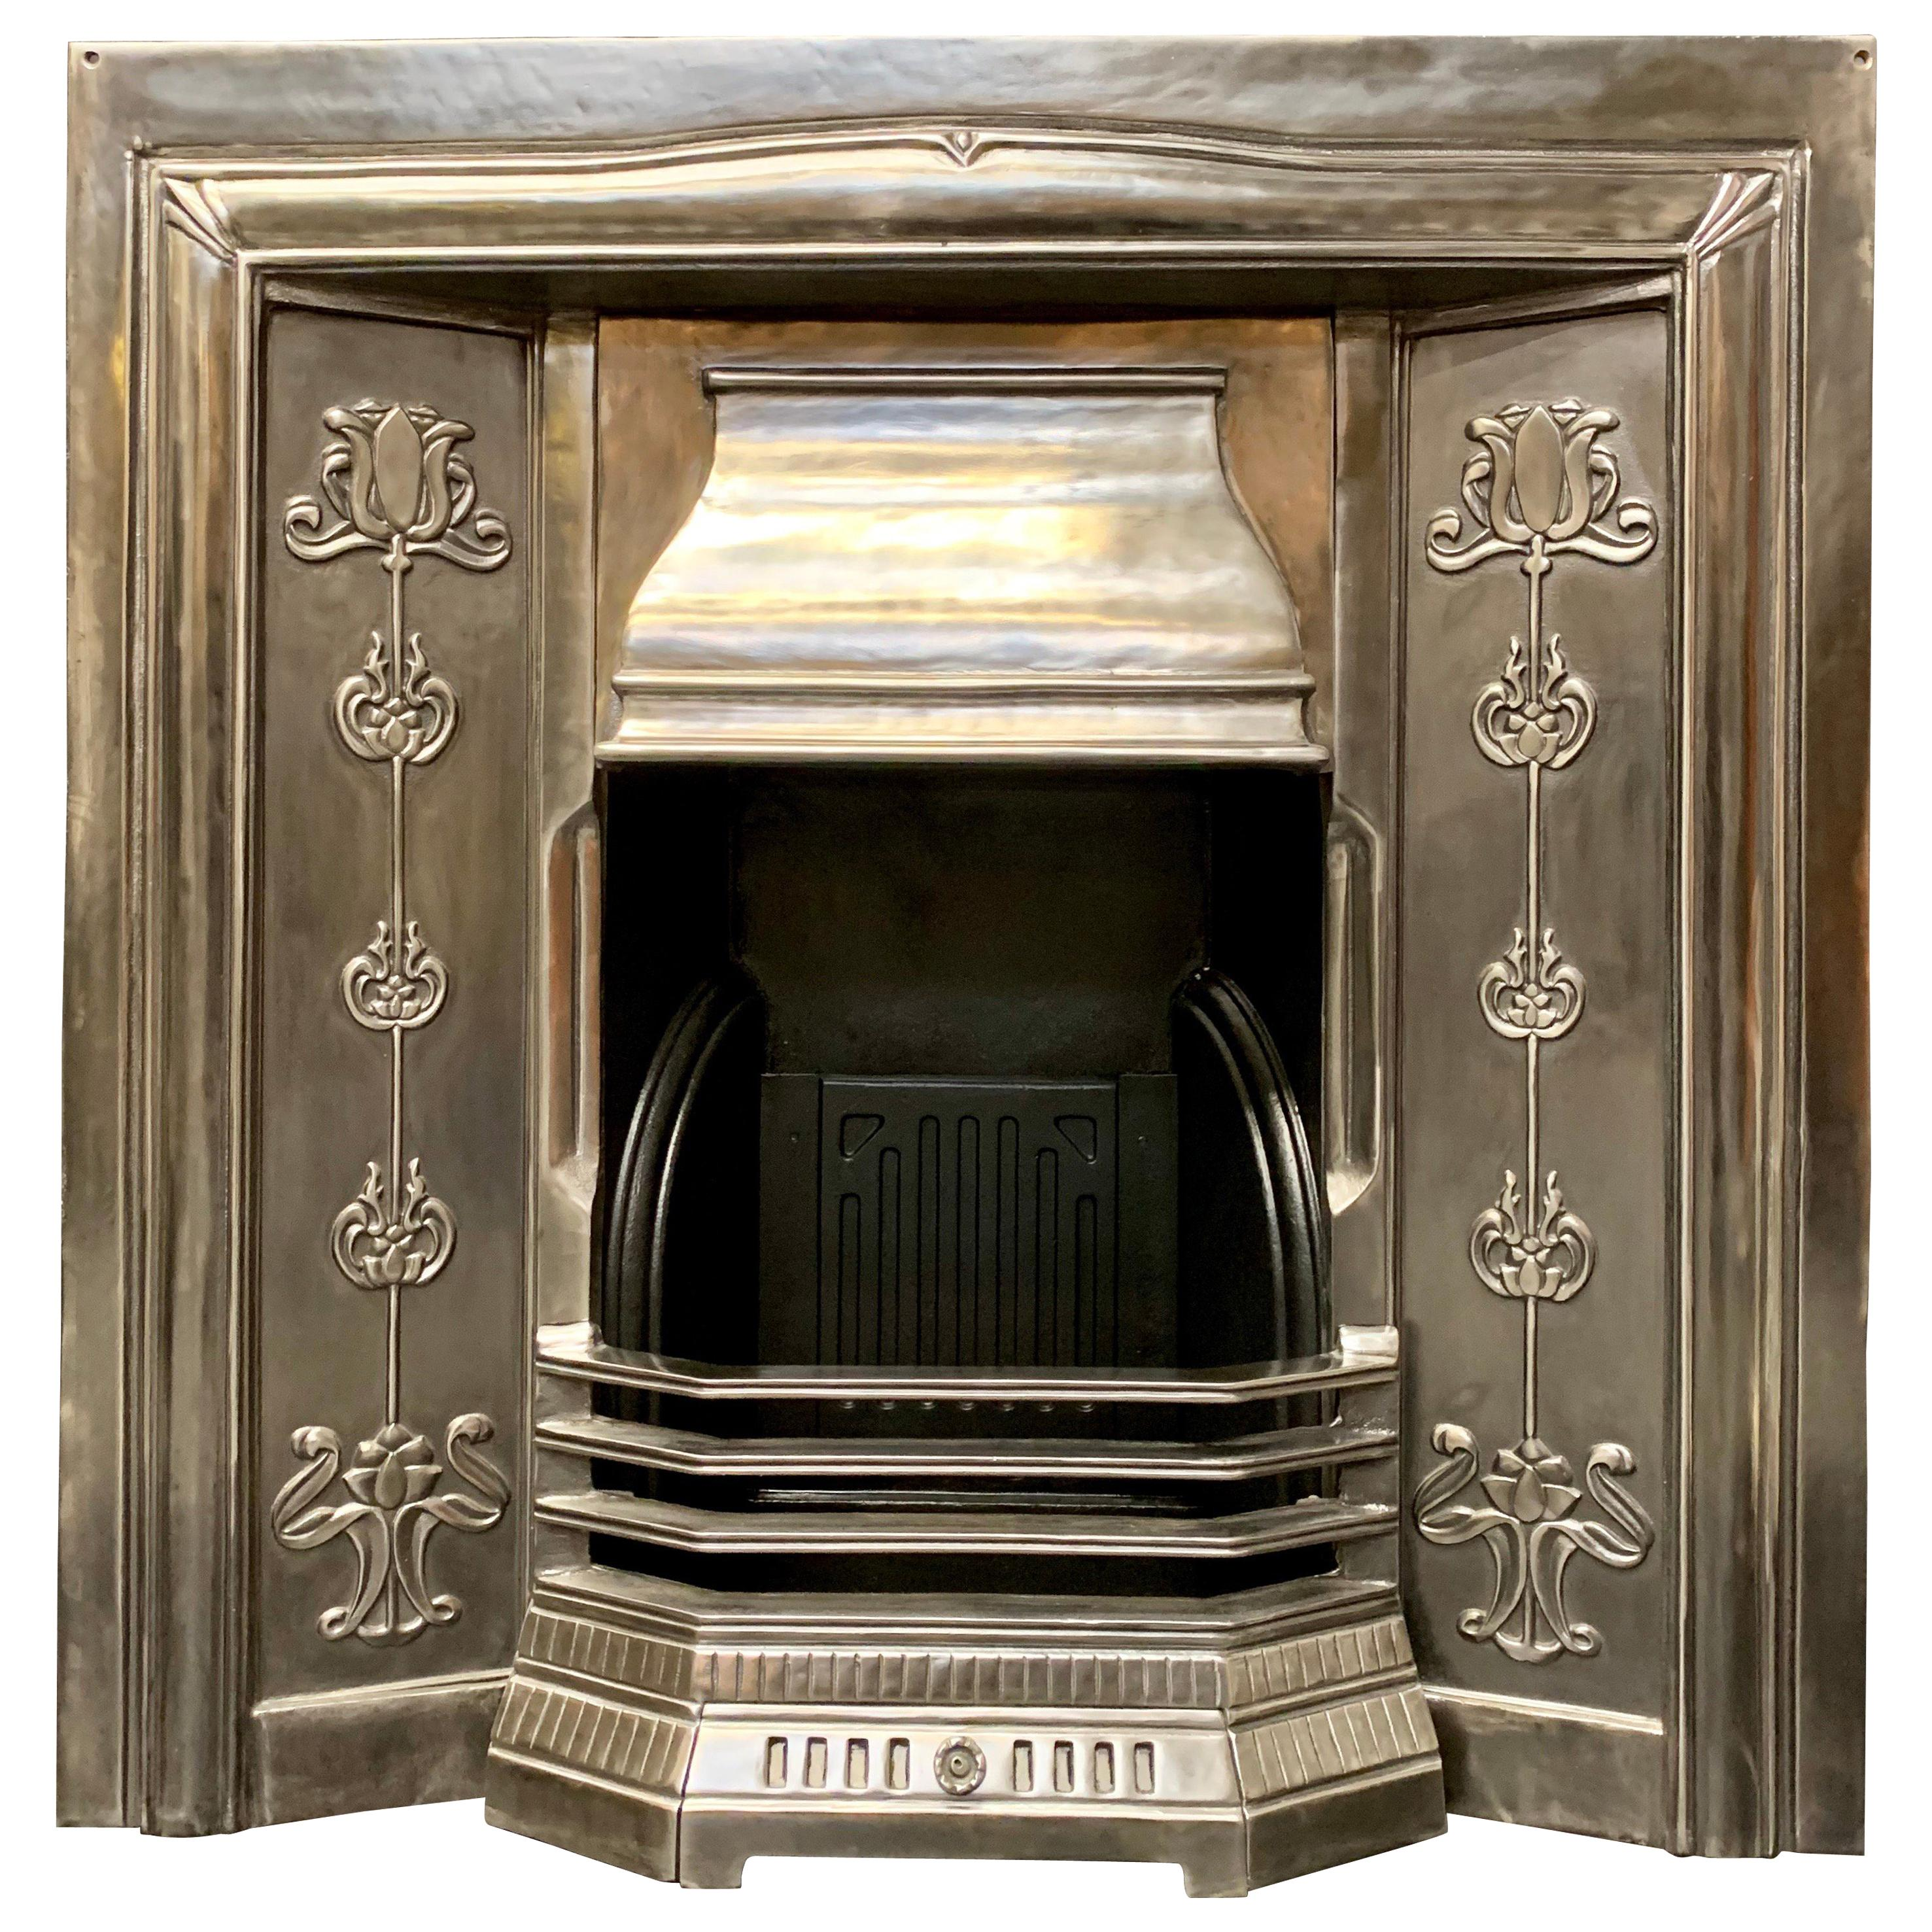 Copper Fireplace Mantel 1920s Fireplaces And Mantels 28 For Sale At 1stdibs